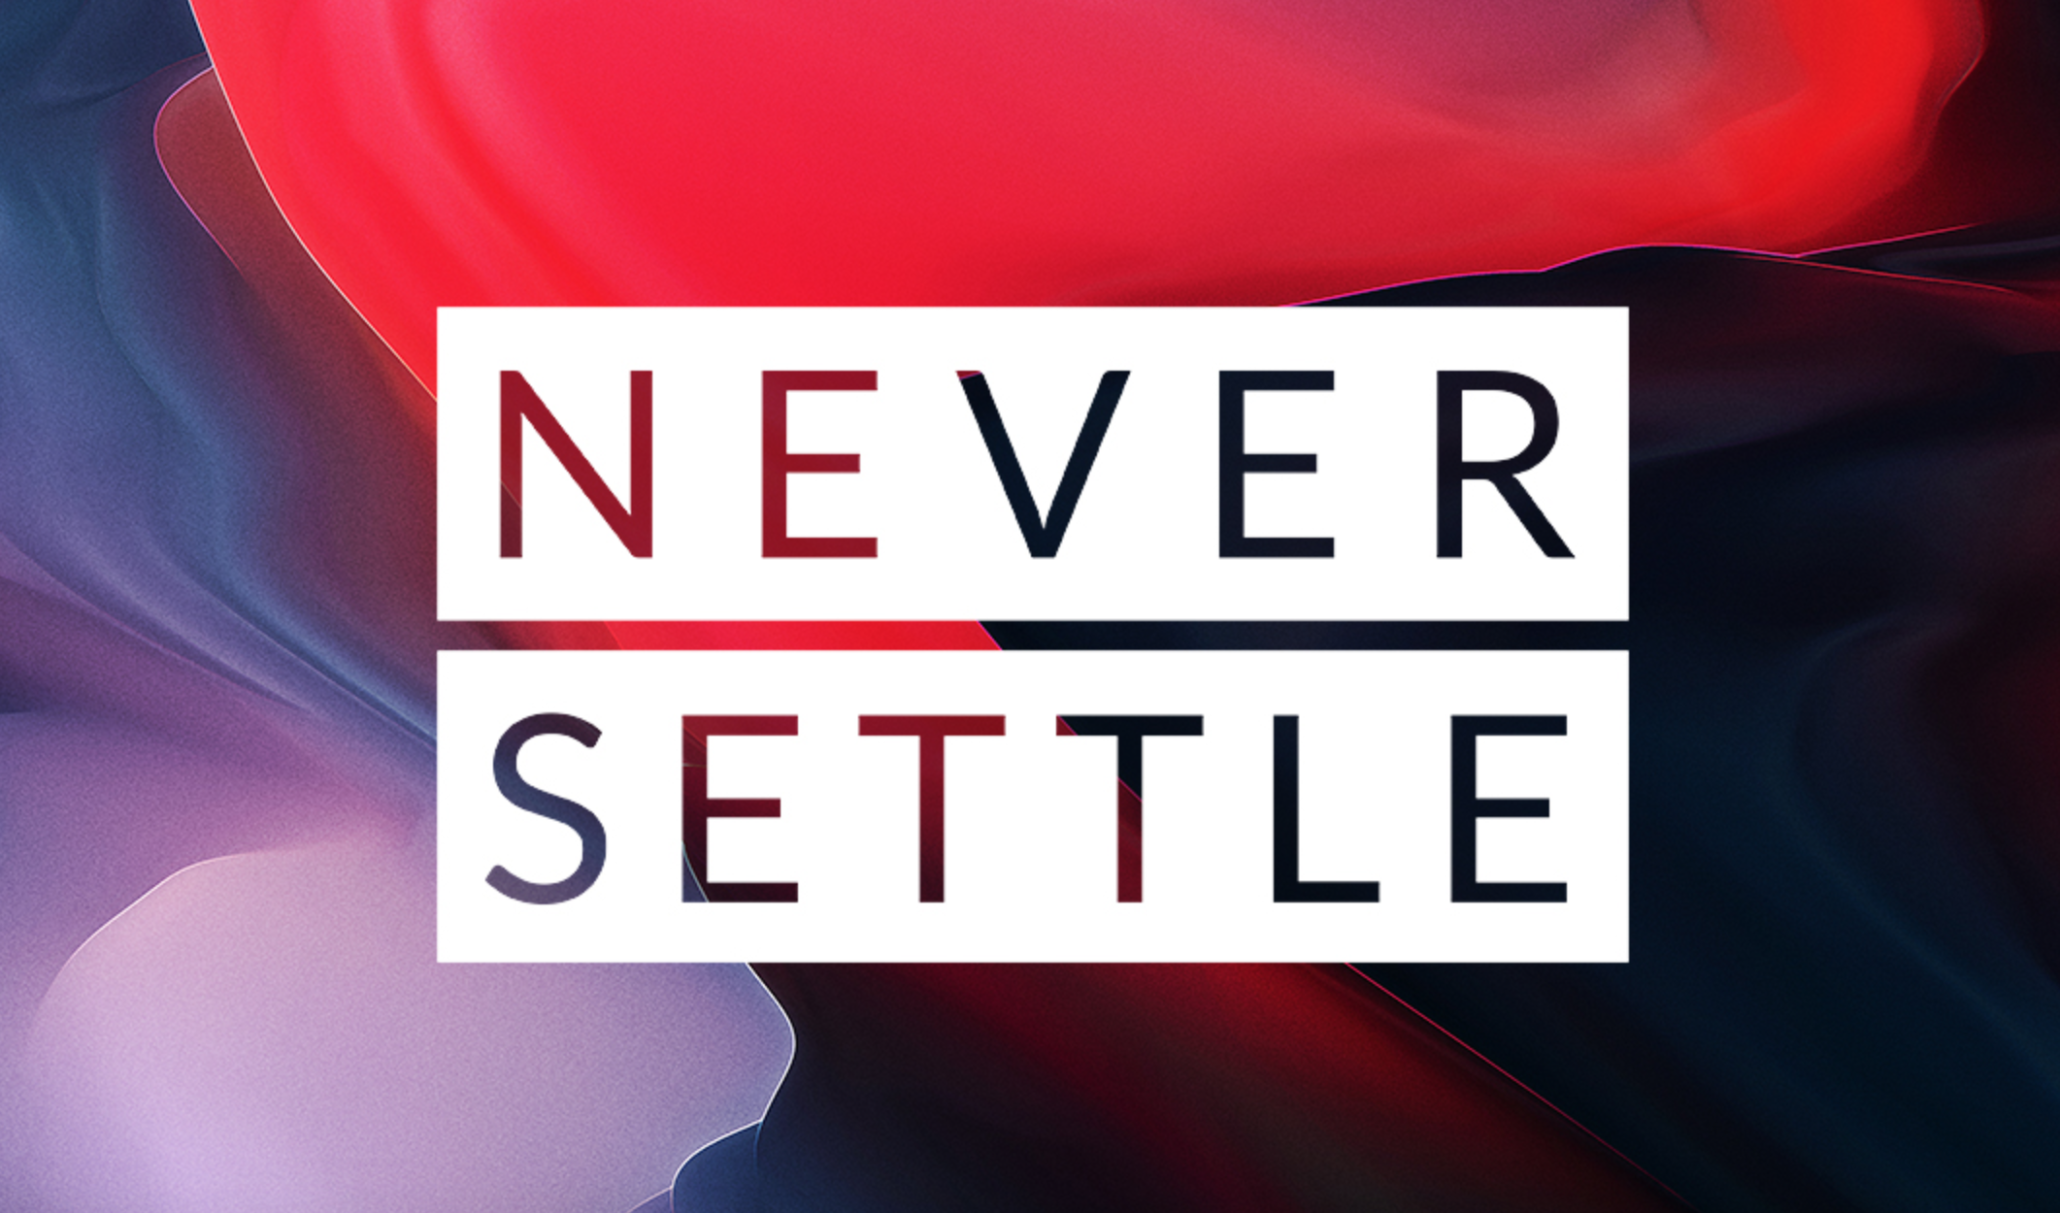 Download Oneplus 6 Wallpapers 2k 4k Never Settle Gallery